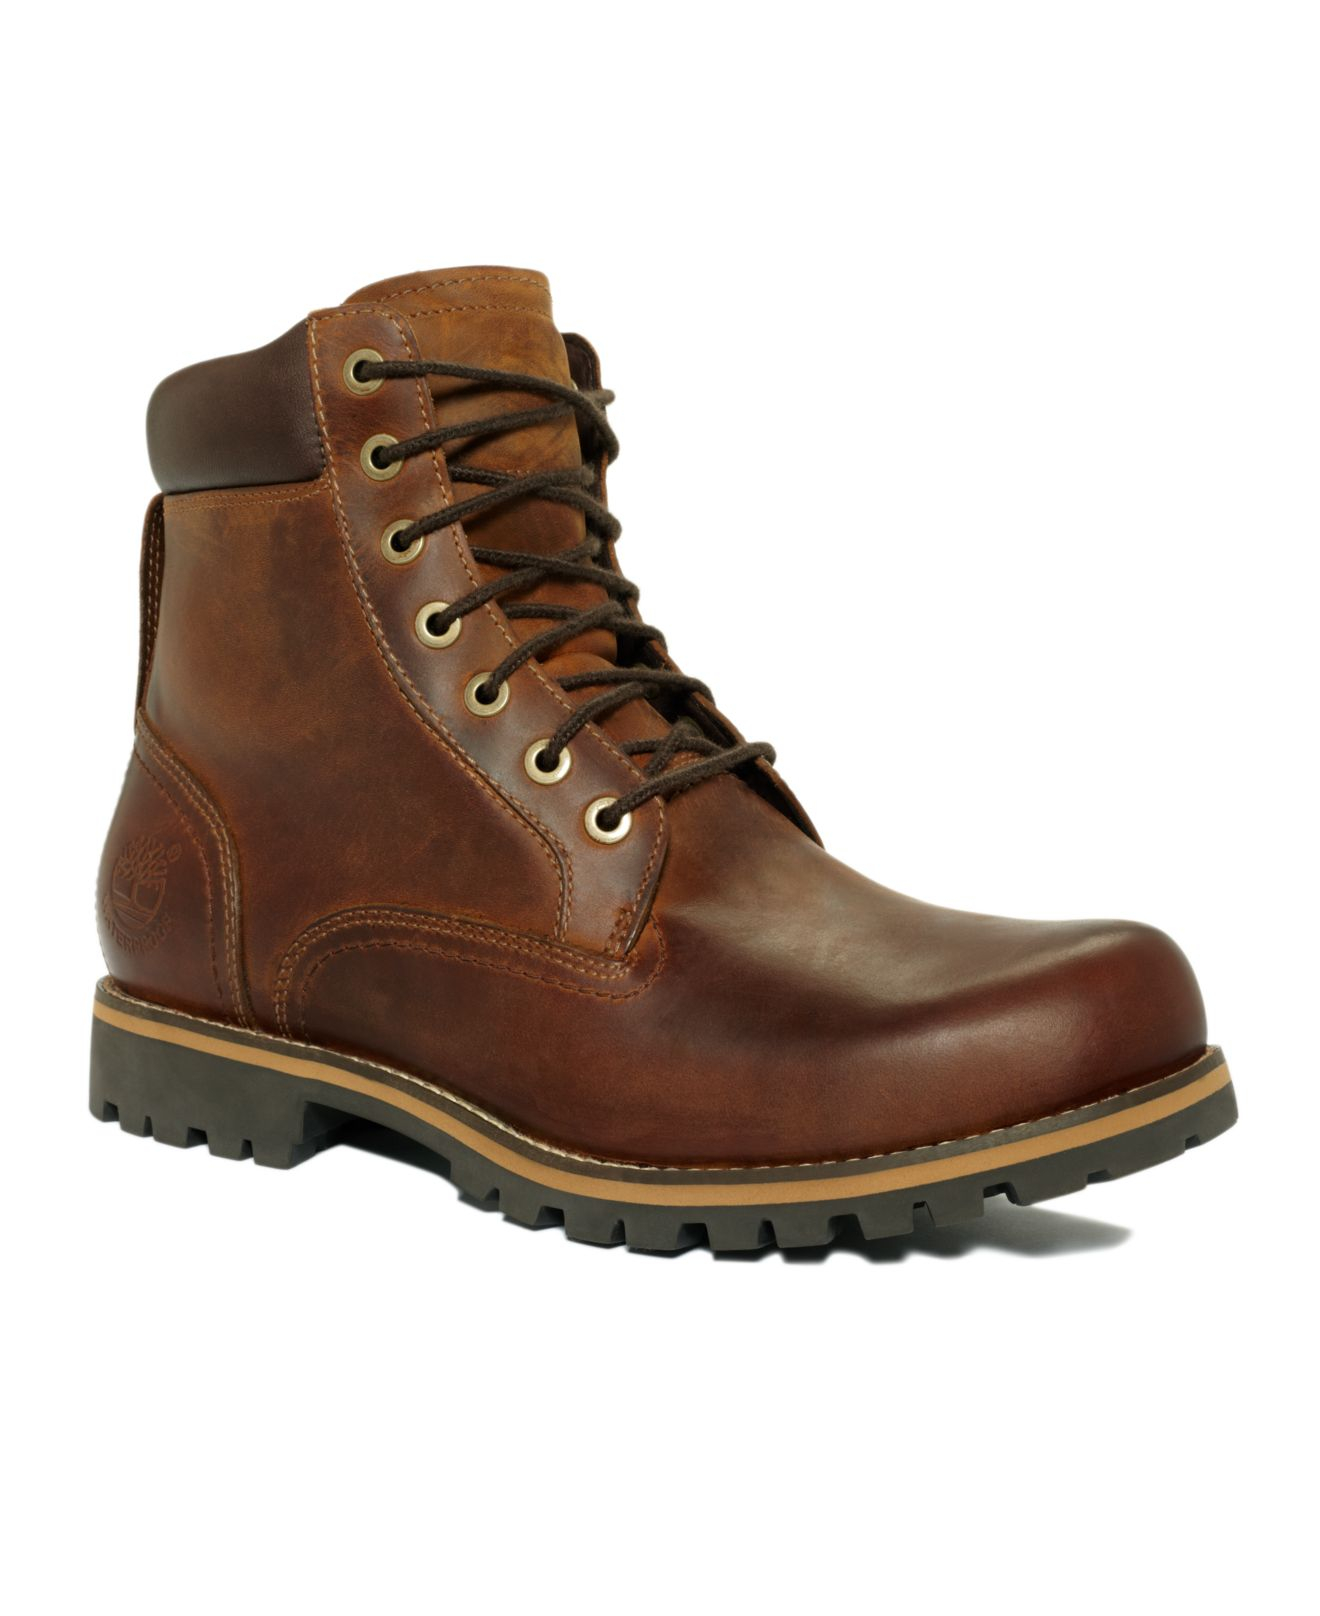 Lyst Timberland Shoes Earthkeepers Rugged Waterproof